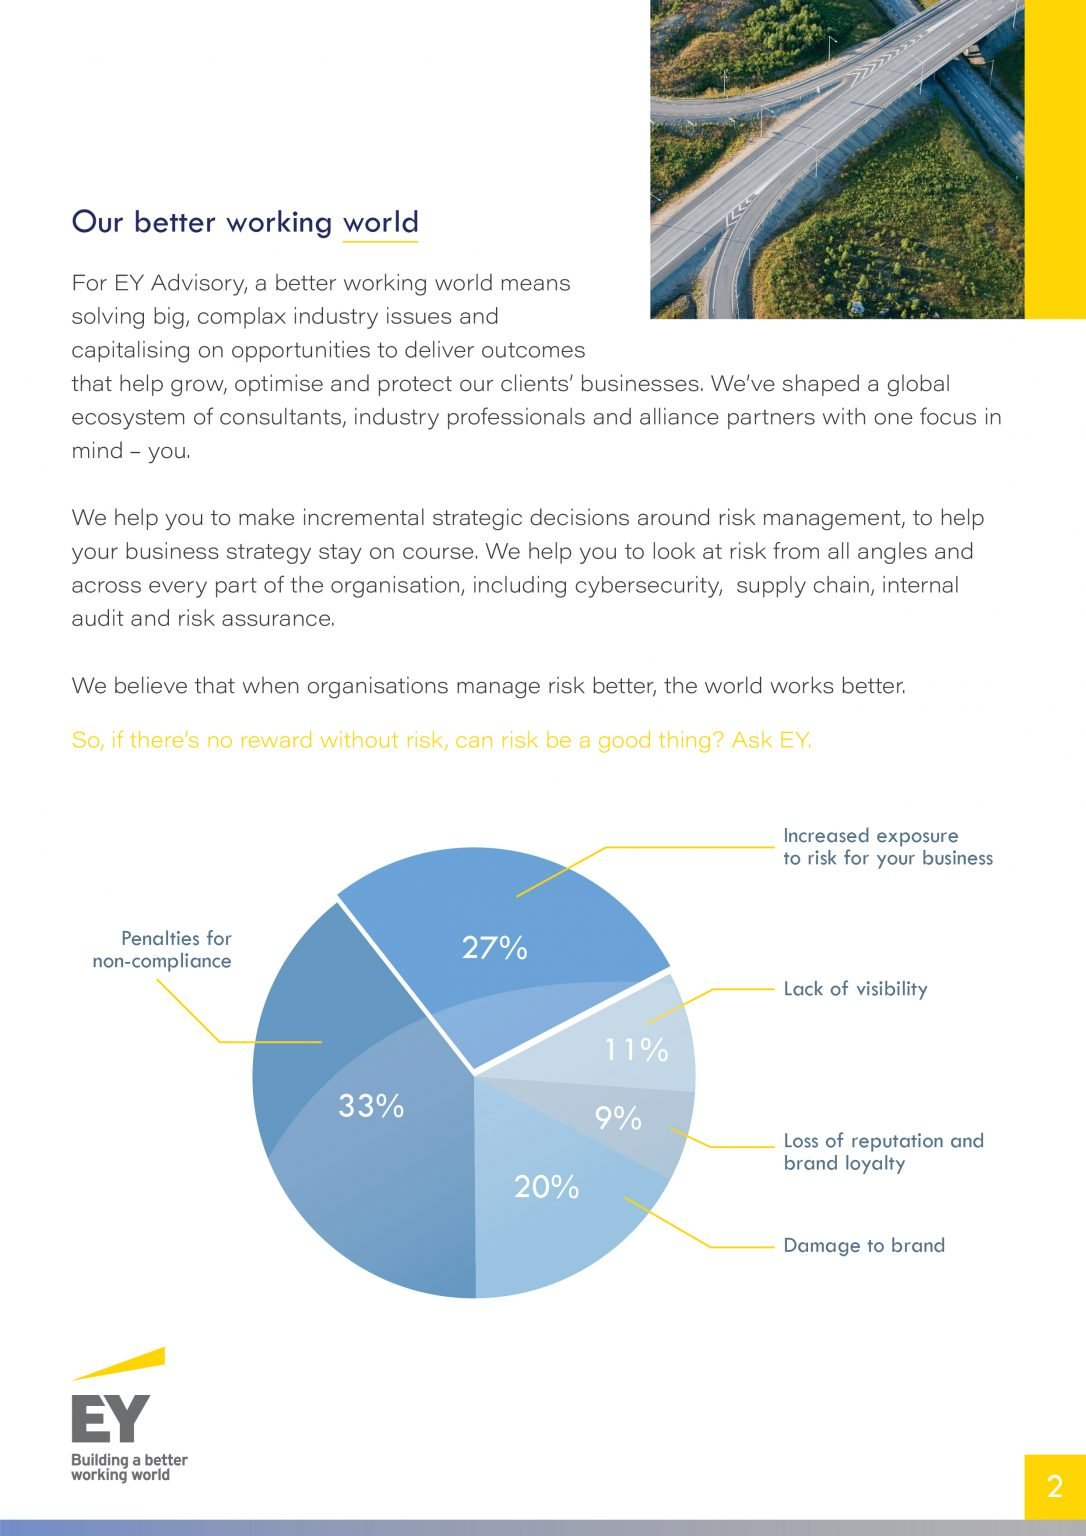 Ernst and young newsletter design - inside pages